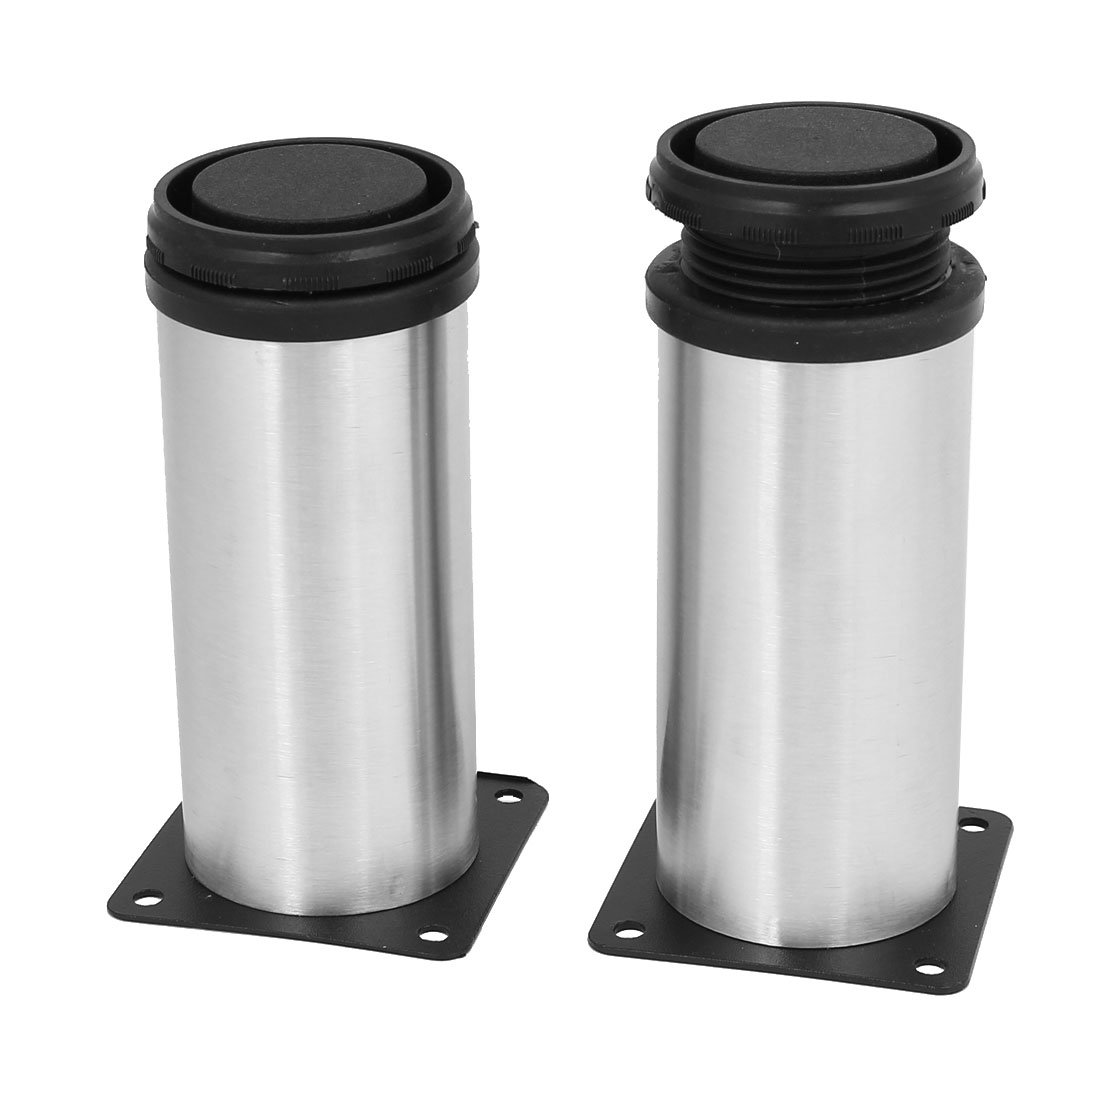 uxcell 120mm Height Stainless Steel Square Shape Base Adjustable Cabinet Leg Feet 2pcs